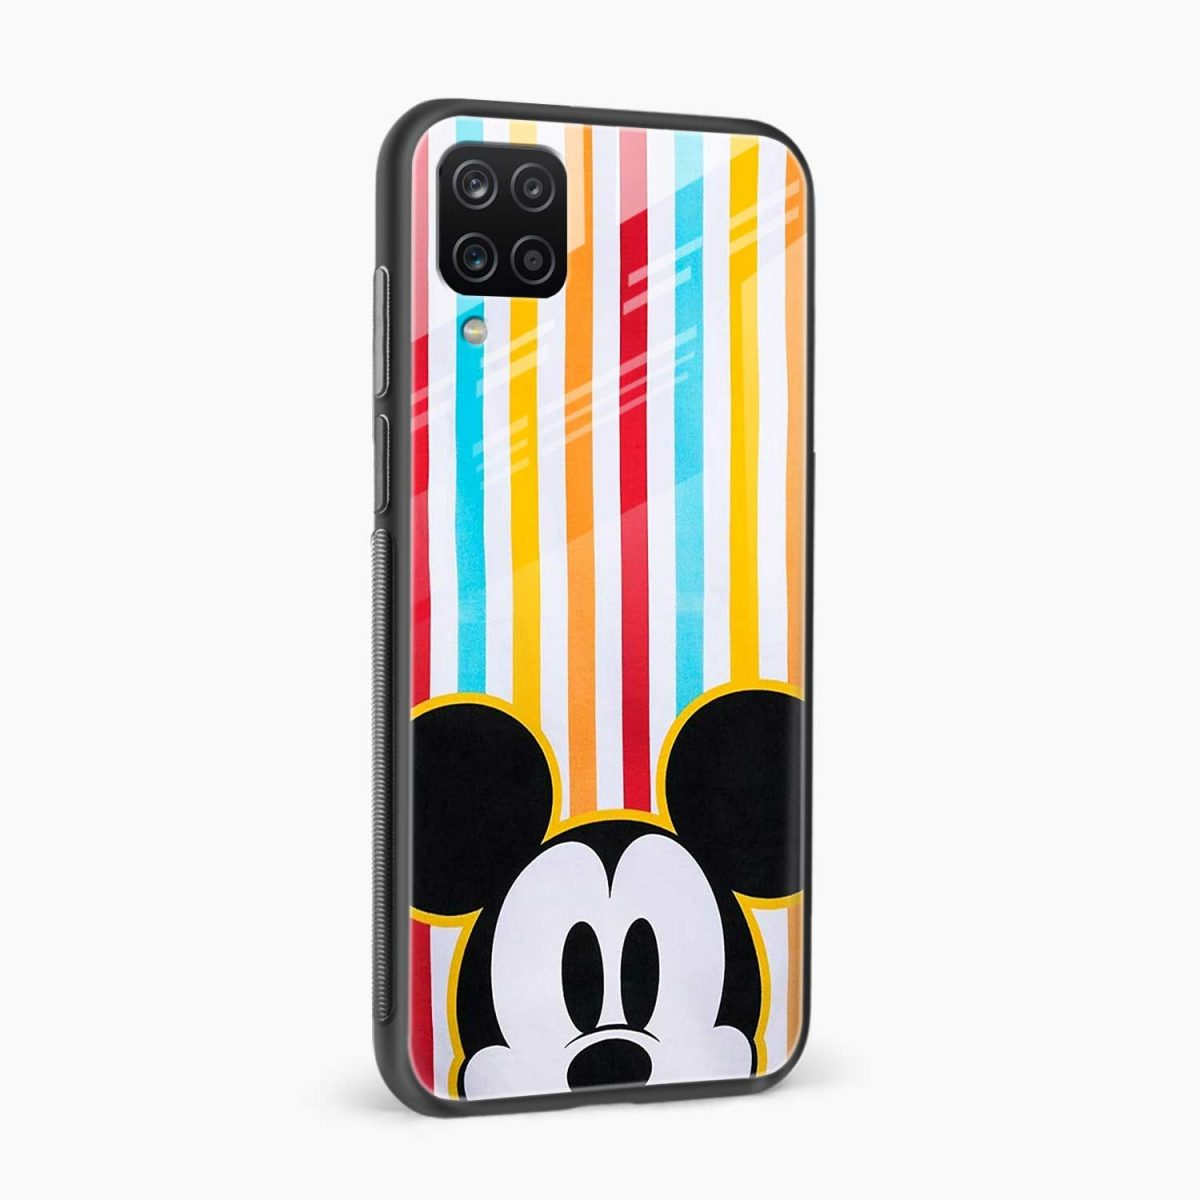 rigid spy mickey mouse side view samsung galaxy a12 back cover